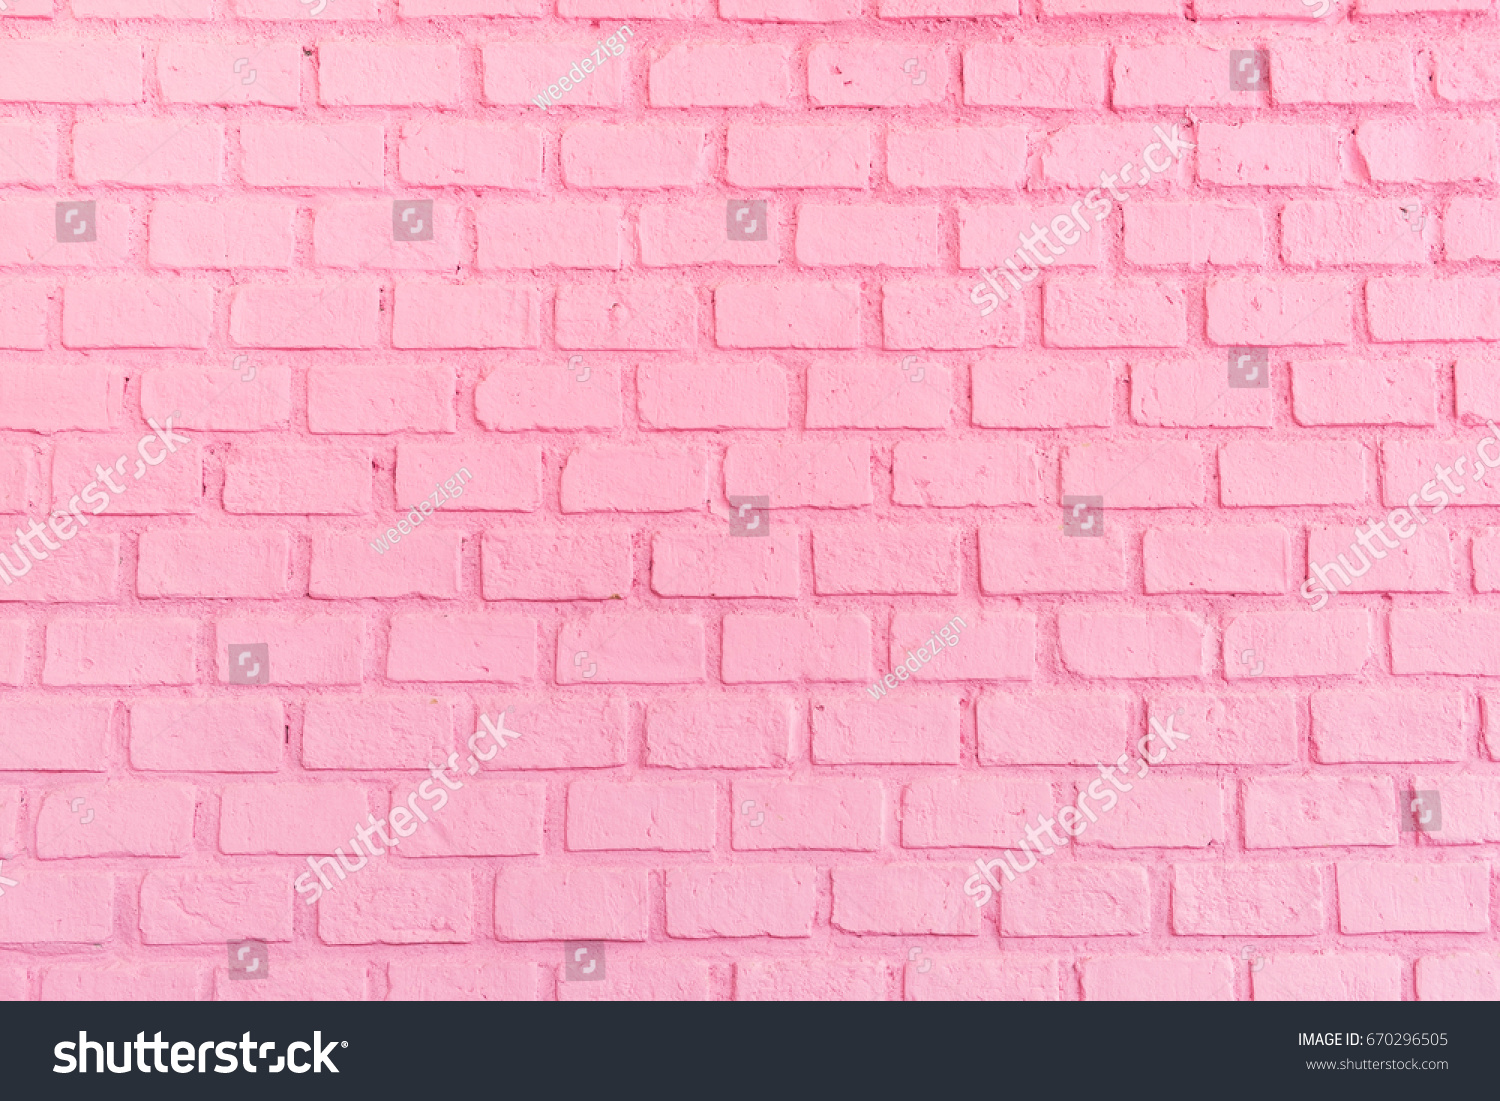 Pastel pink brick background wall texture.pink red brickwall with light paint backdrop wallpaper for woman concept #670296505